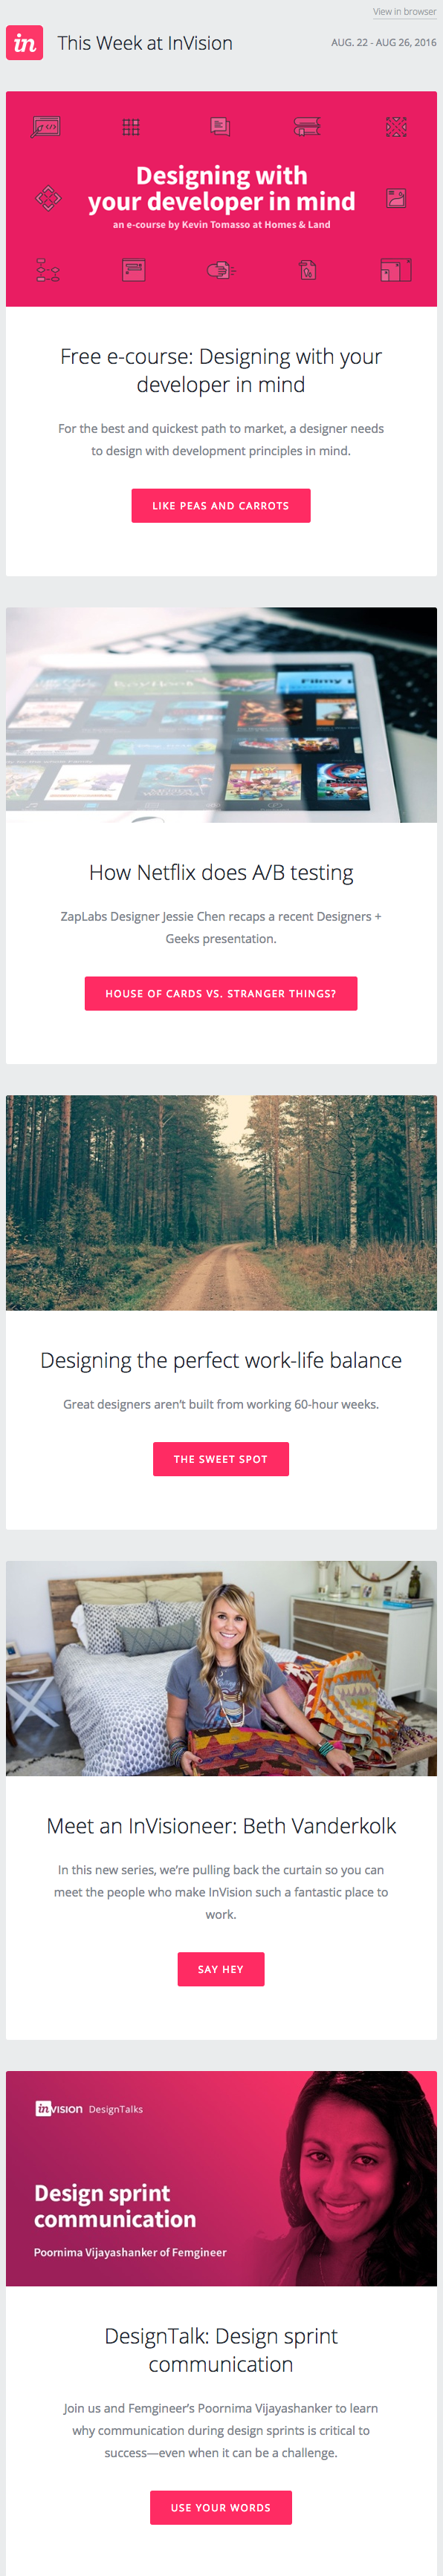 invision-email-example.png